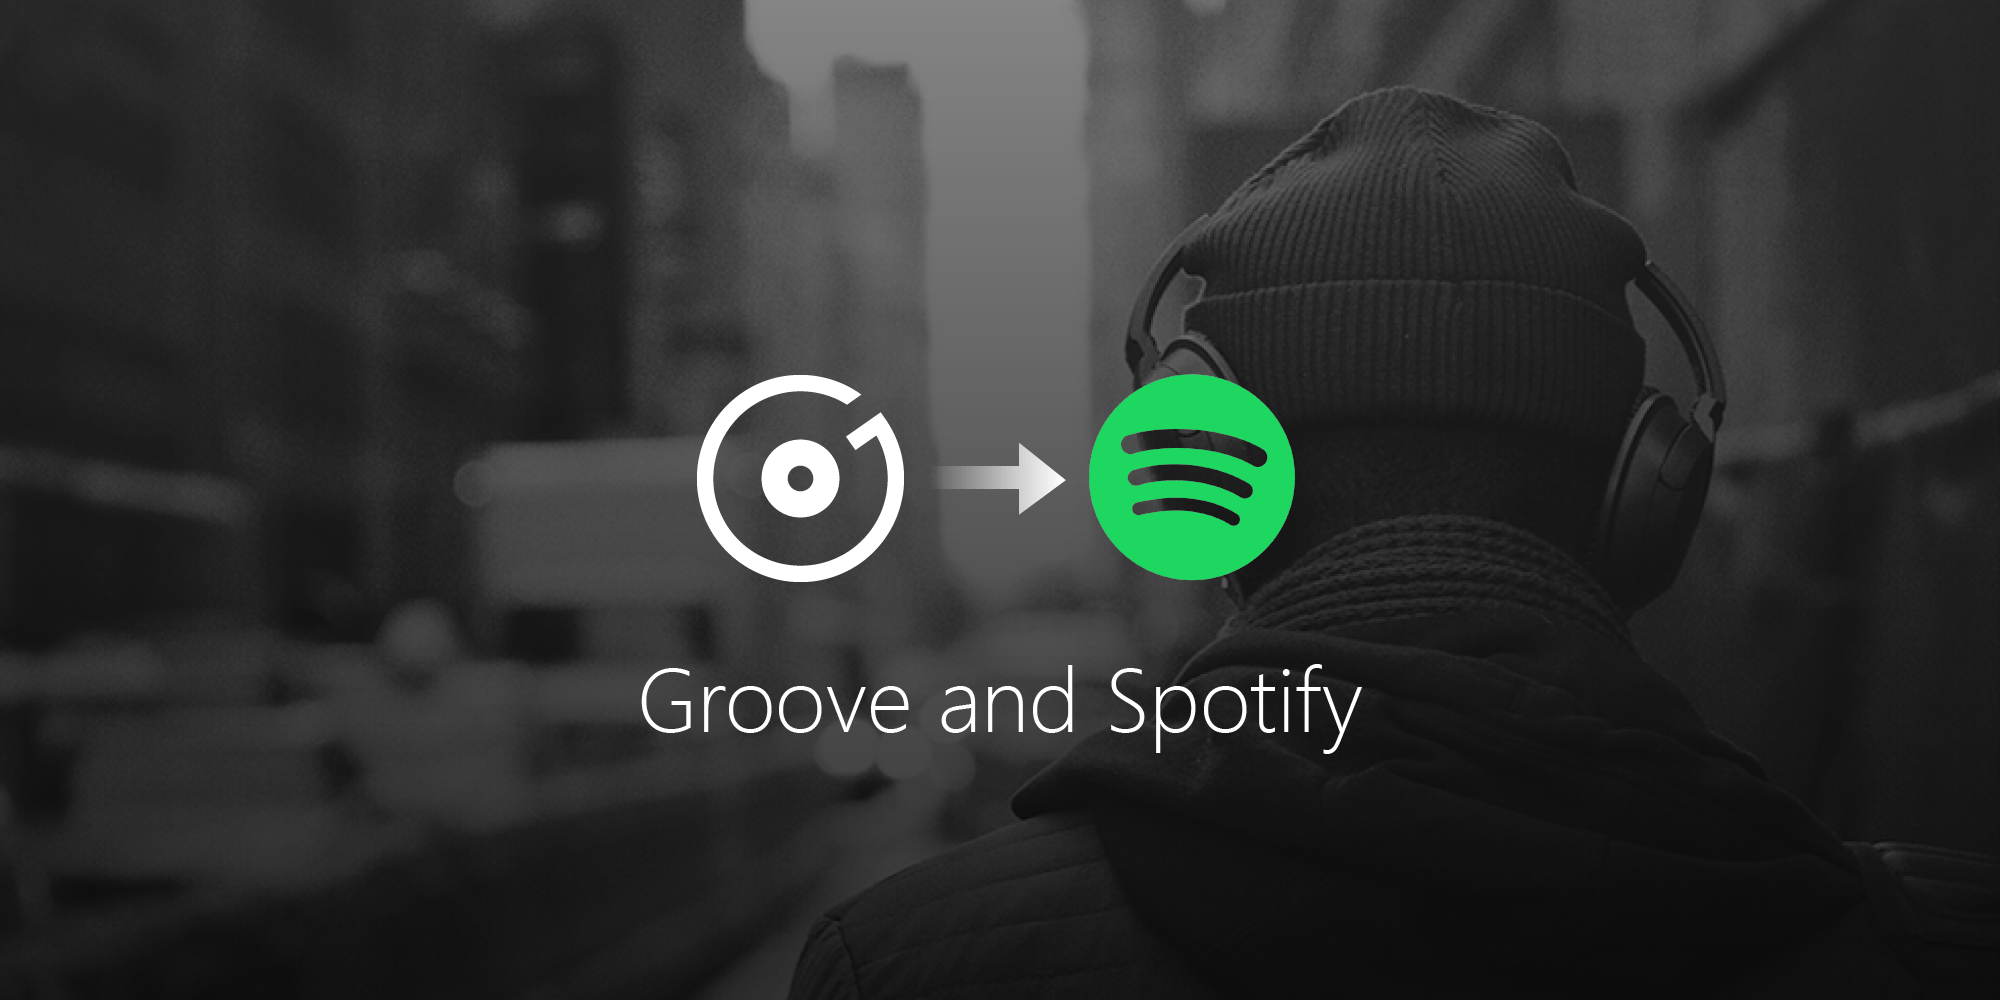 Microsoft is ending support for Groove Music in favor of Spotify class=